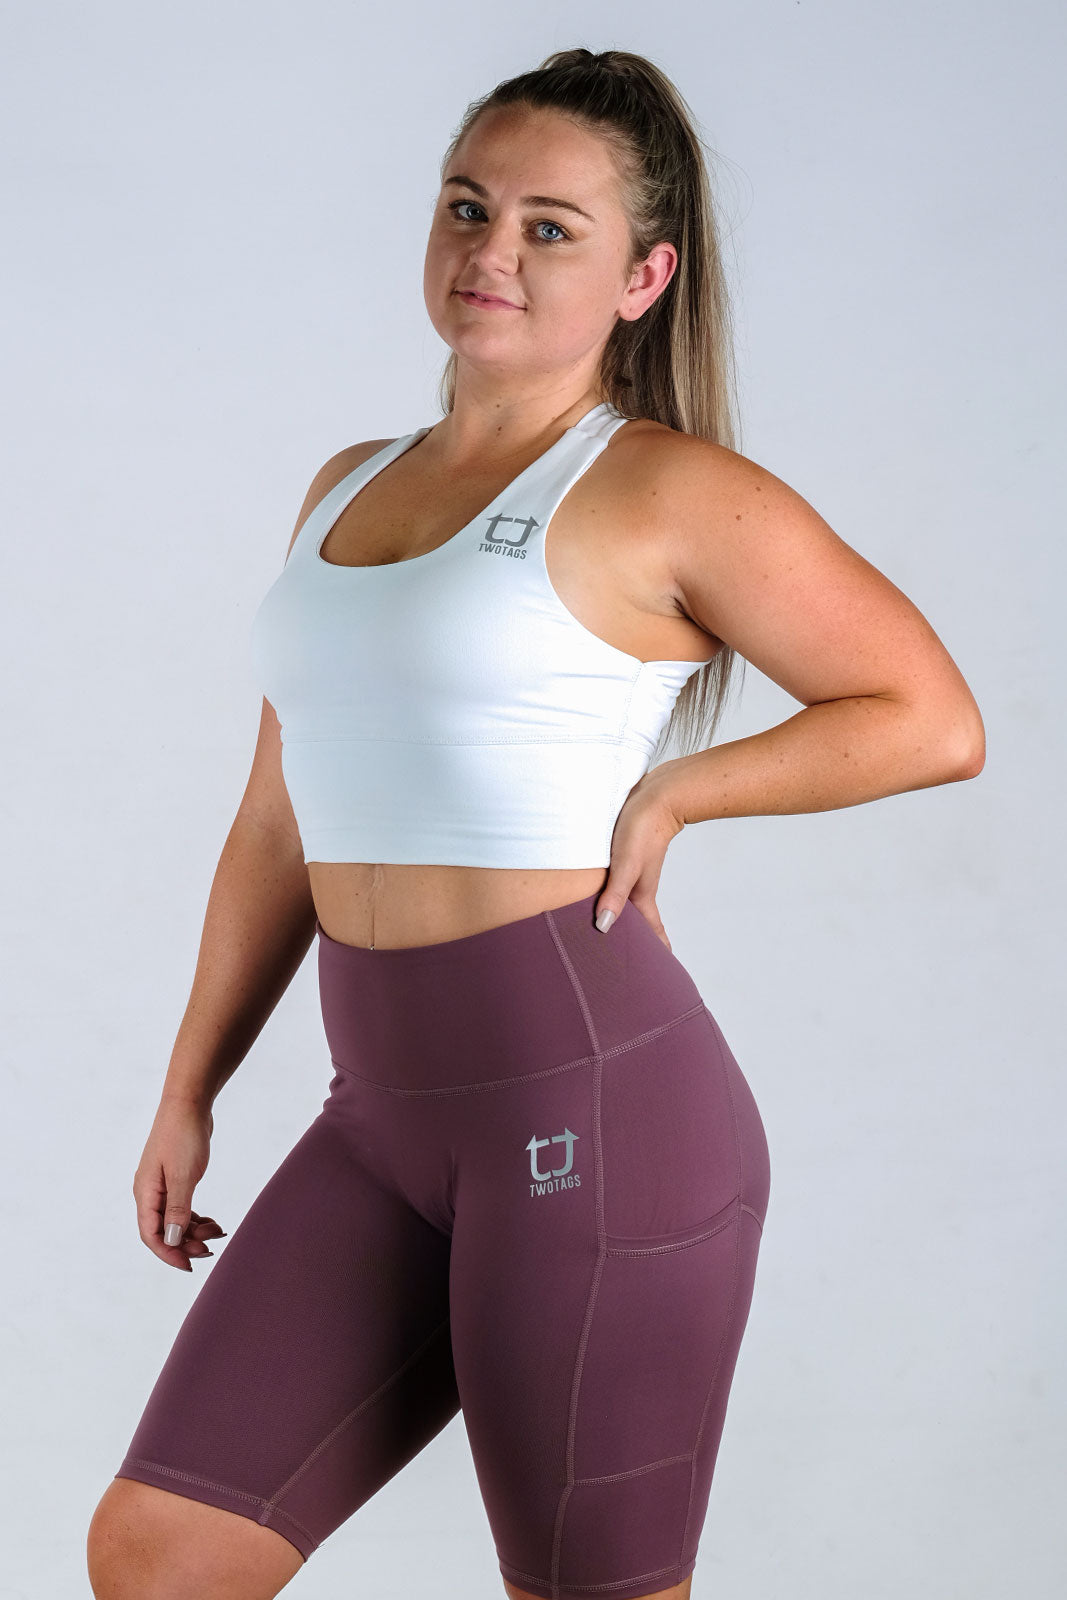 Vibe X Supportive Racerback Top - White